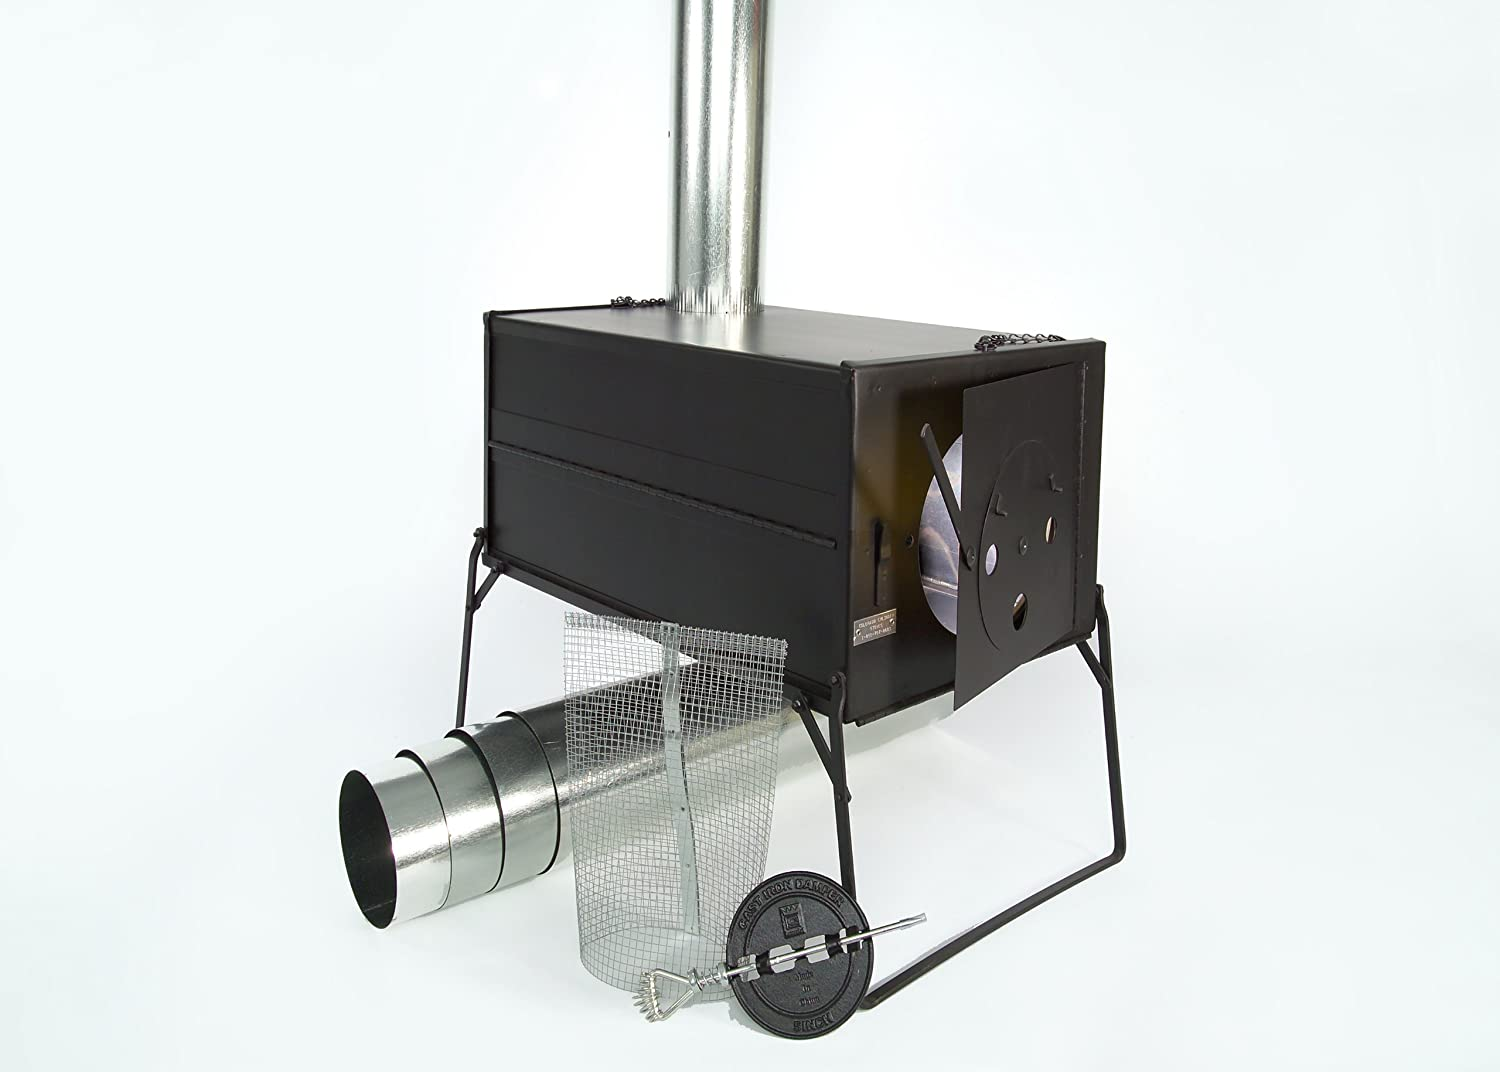 Photo of a tent stove with black square body, silver chimney pole attached to its one side